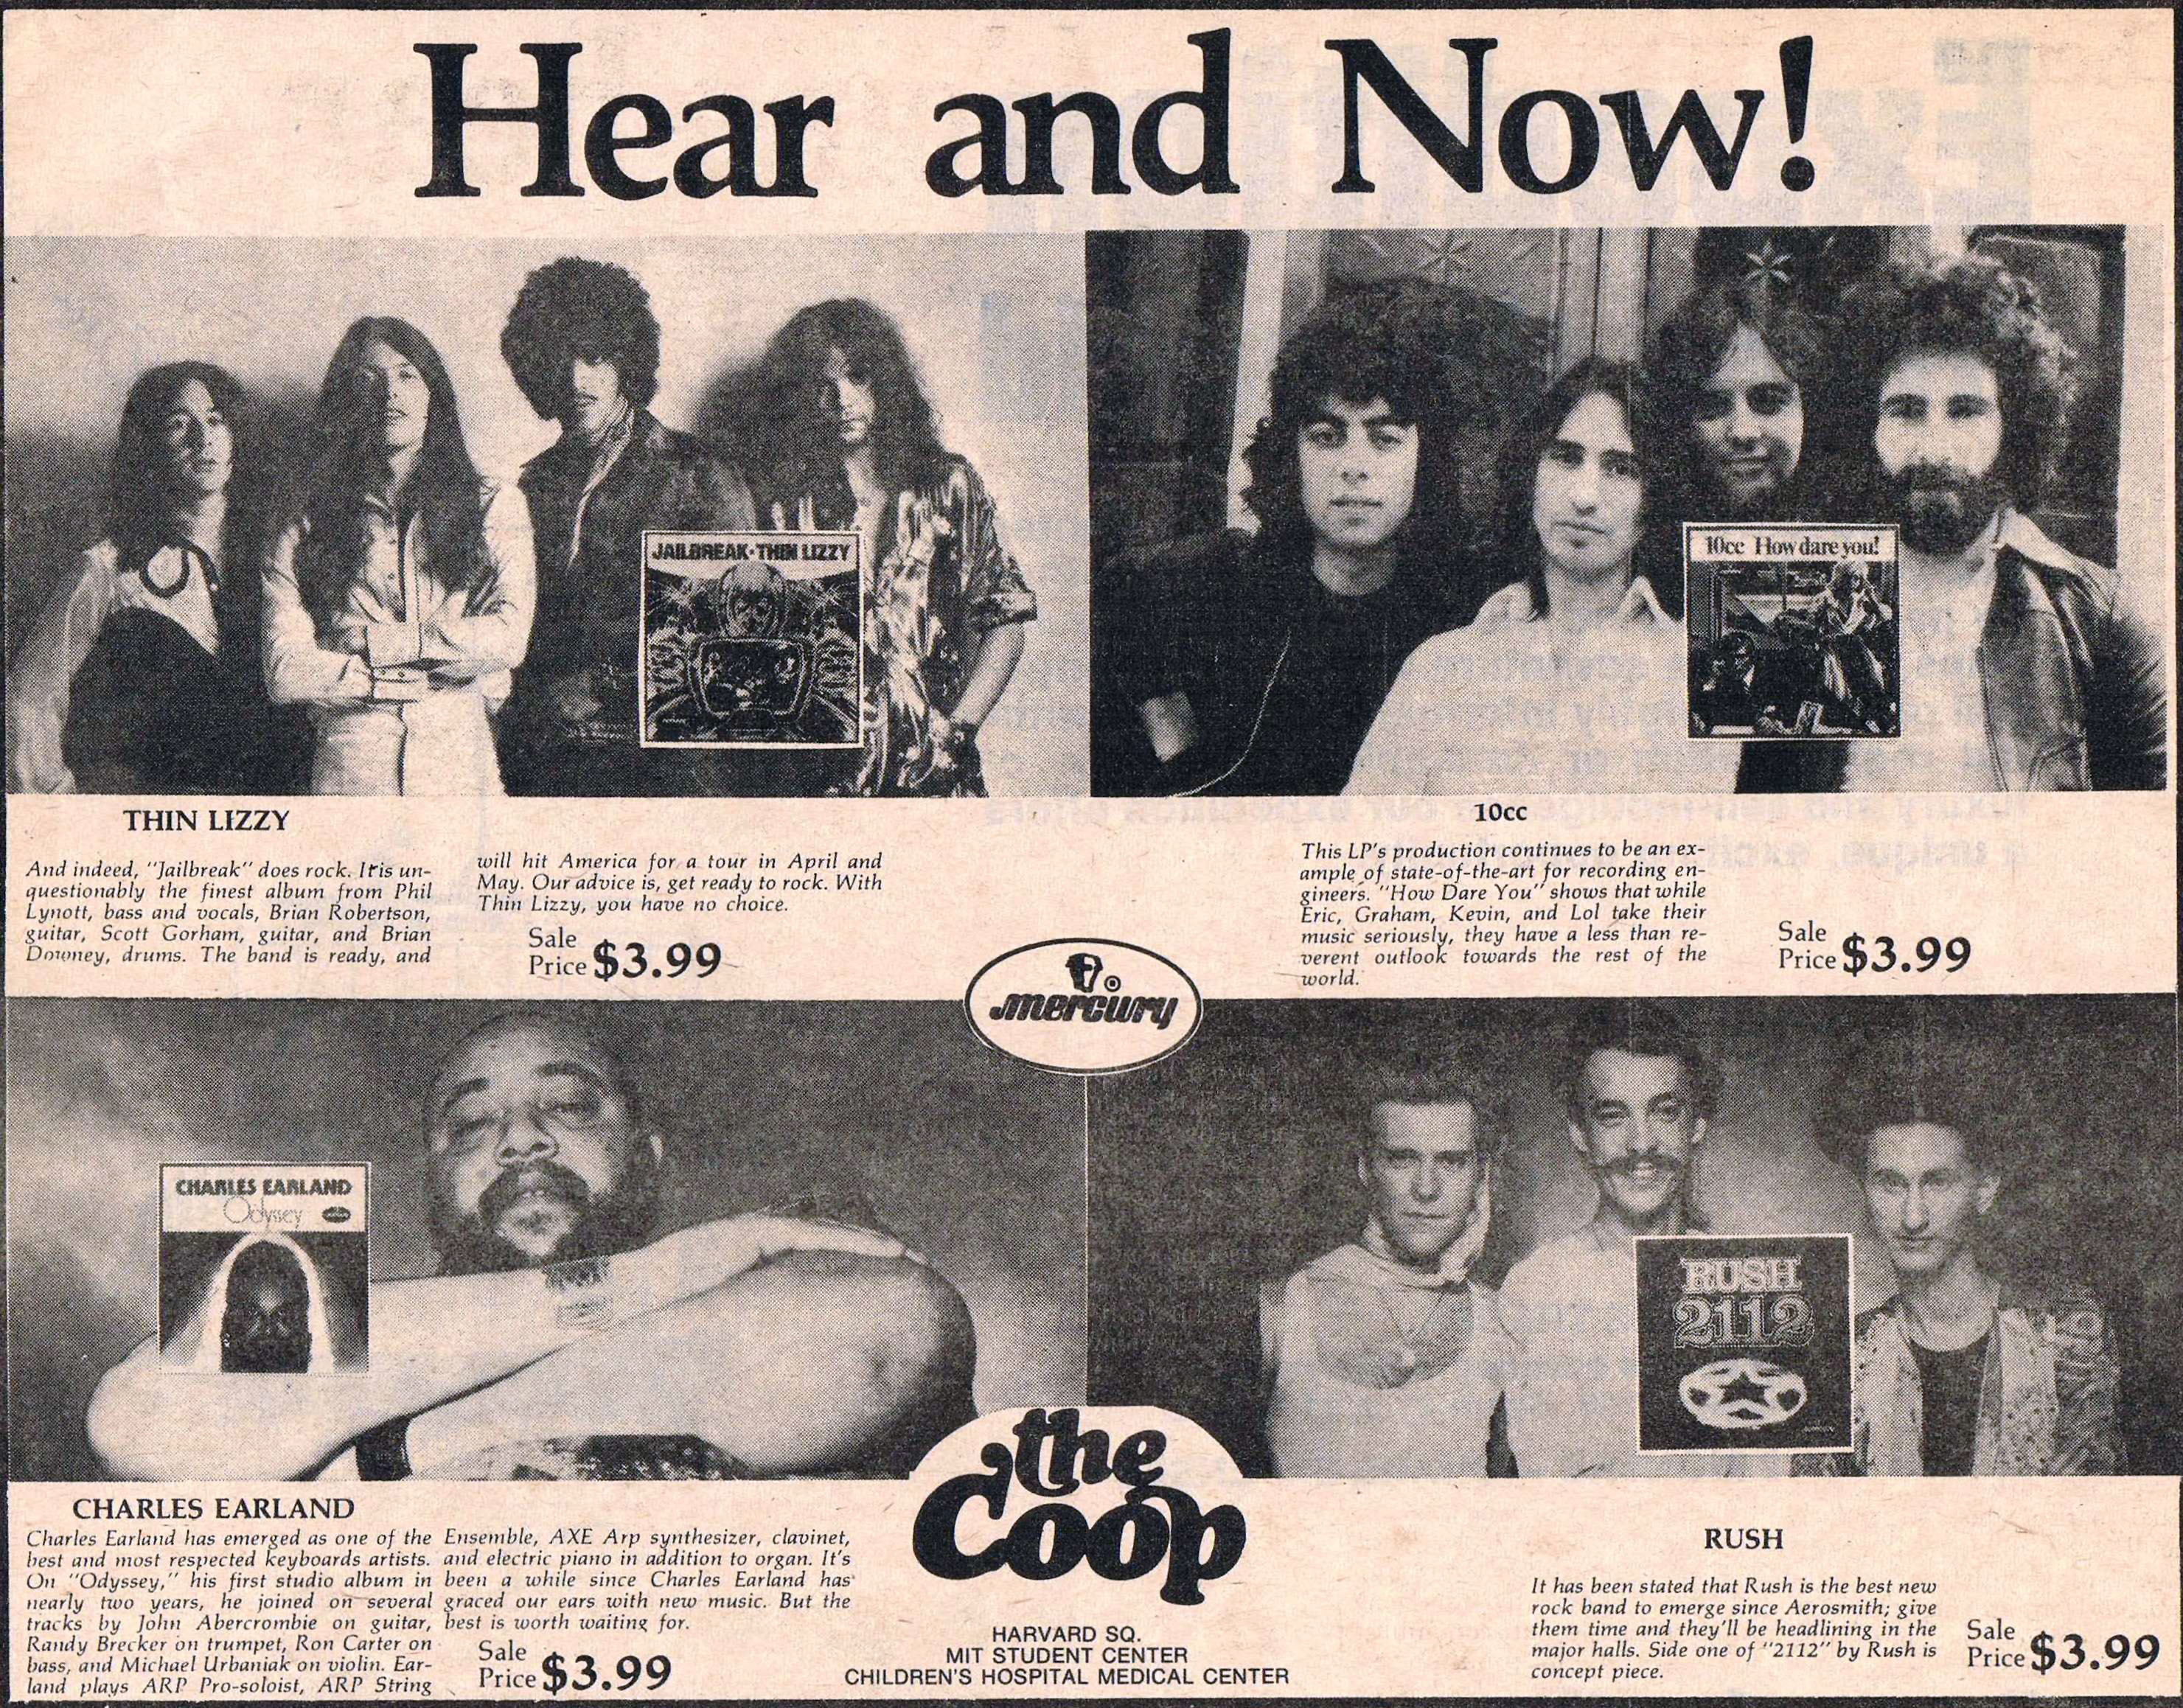 Up next is an interesting advertisement for 2112. Anyone else tired of  seeing this particular image of the band?